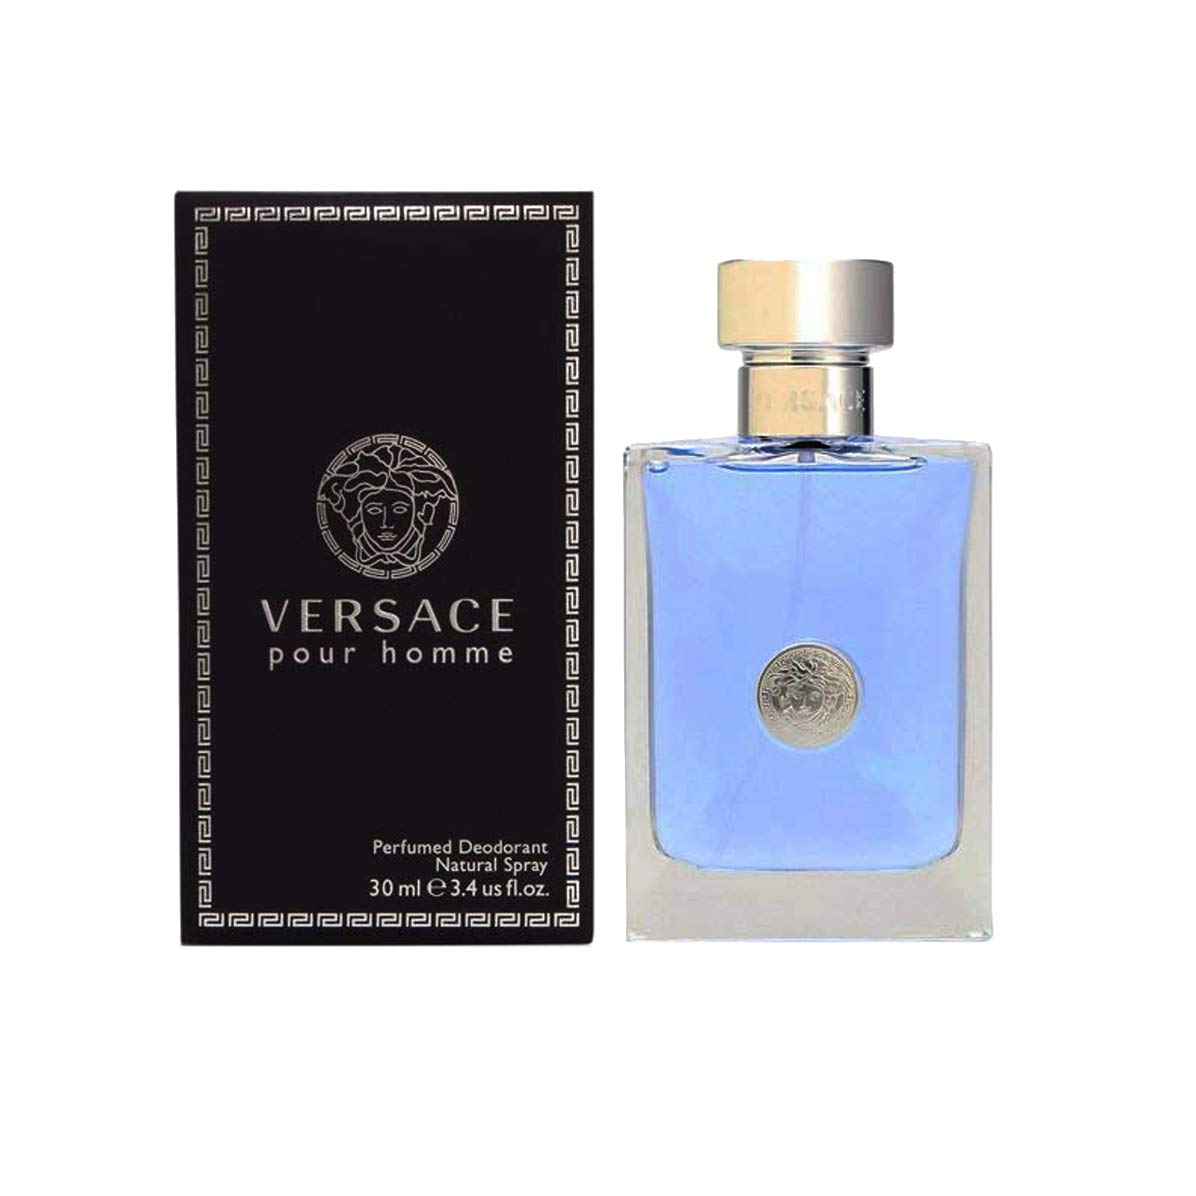 Gianni Versace Versace Pour Homme for Men, Eau De Toilette Spray 1.7-Ounce 159889